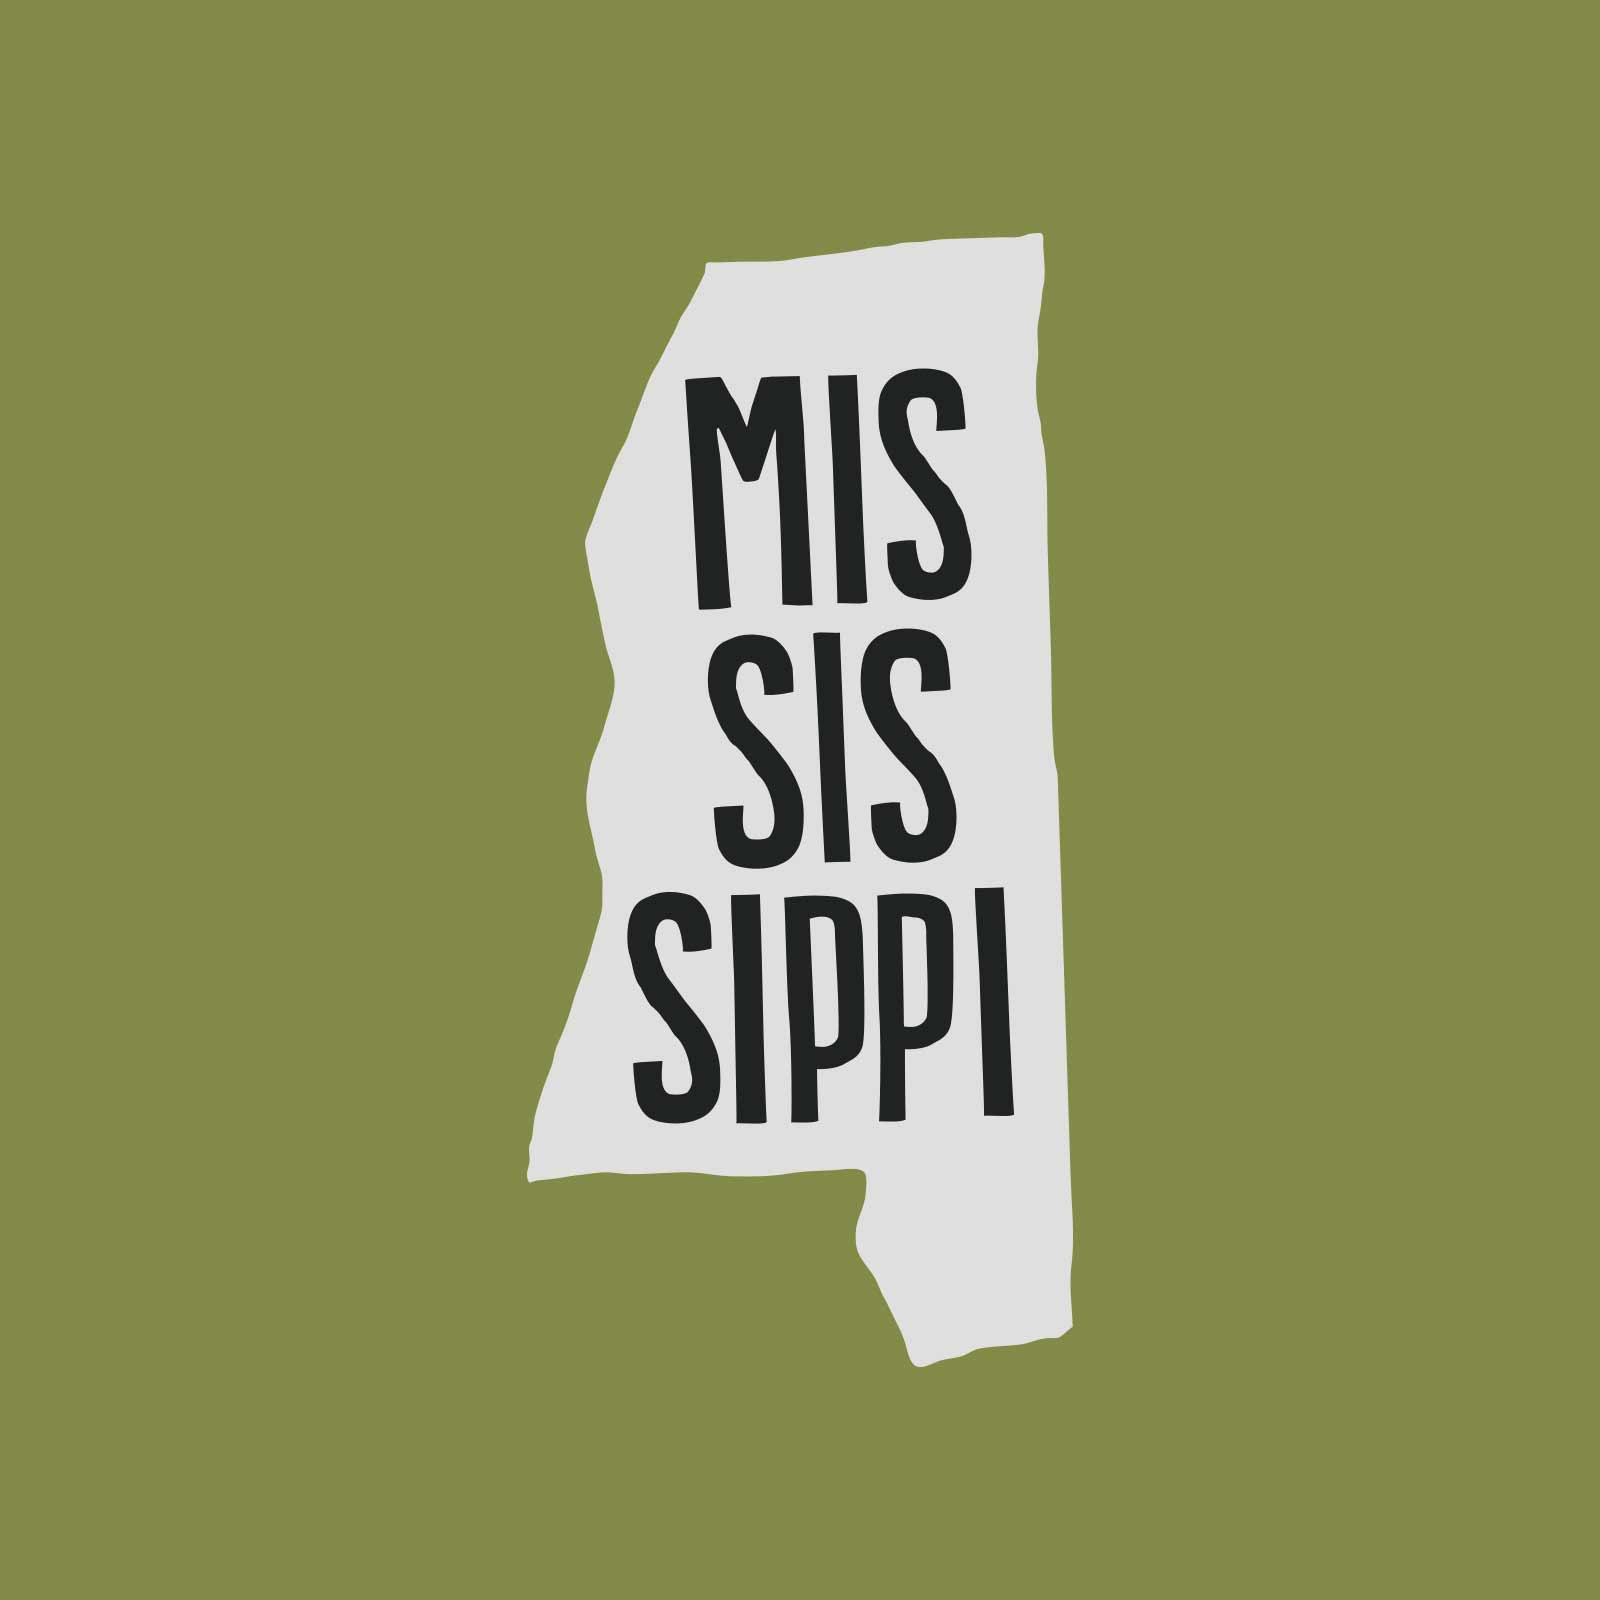 How to start a business in Mississippi